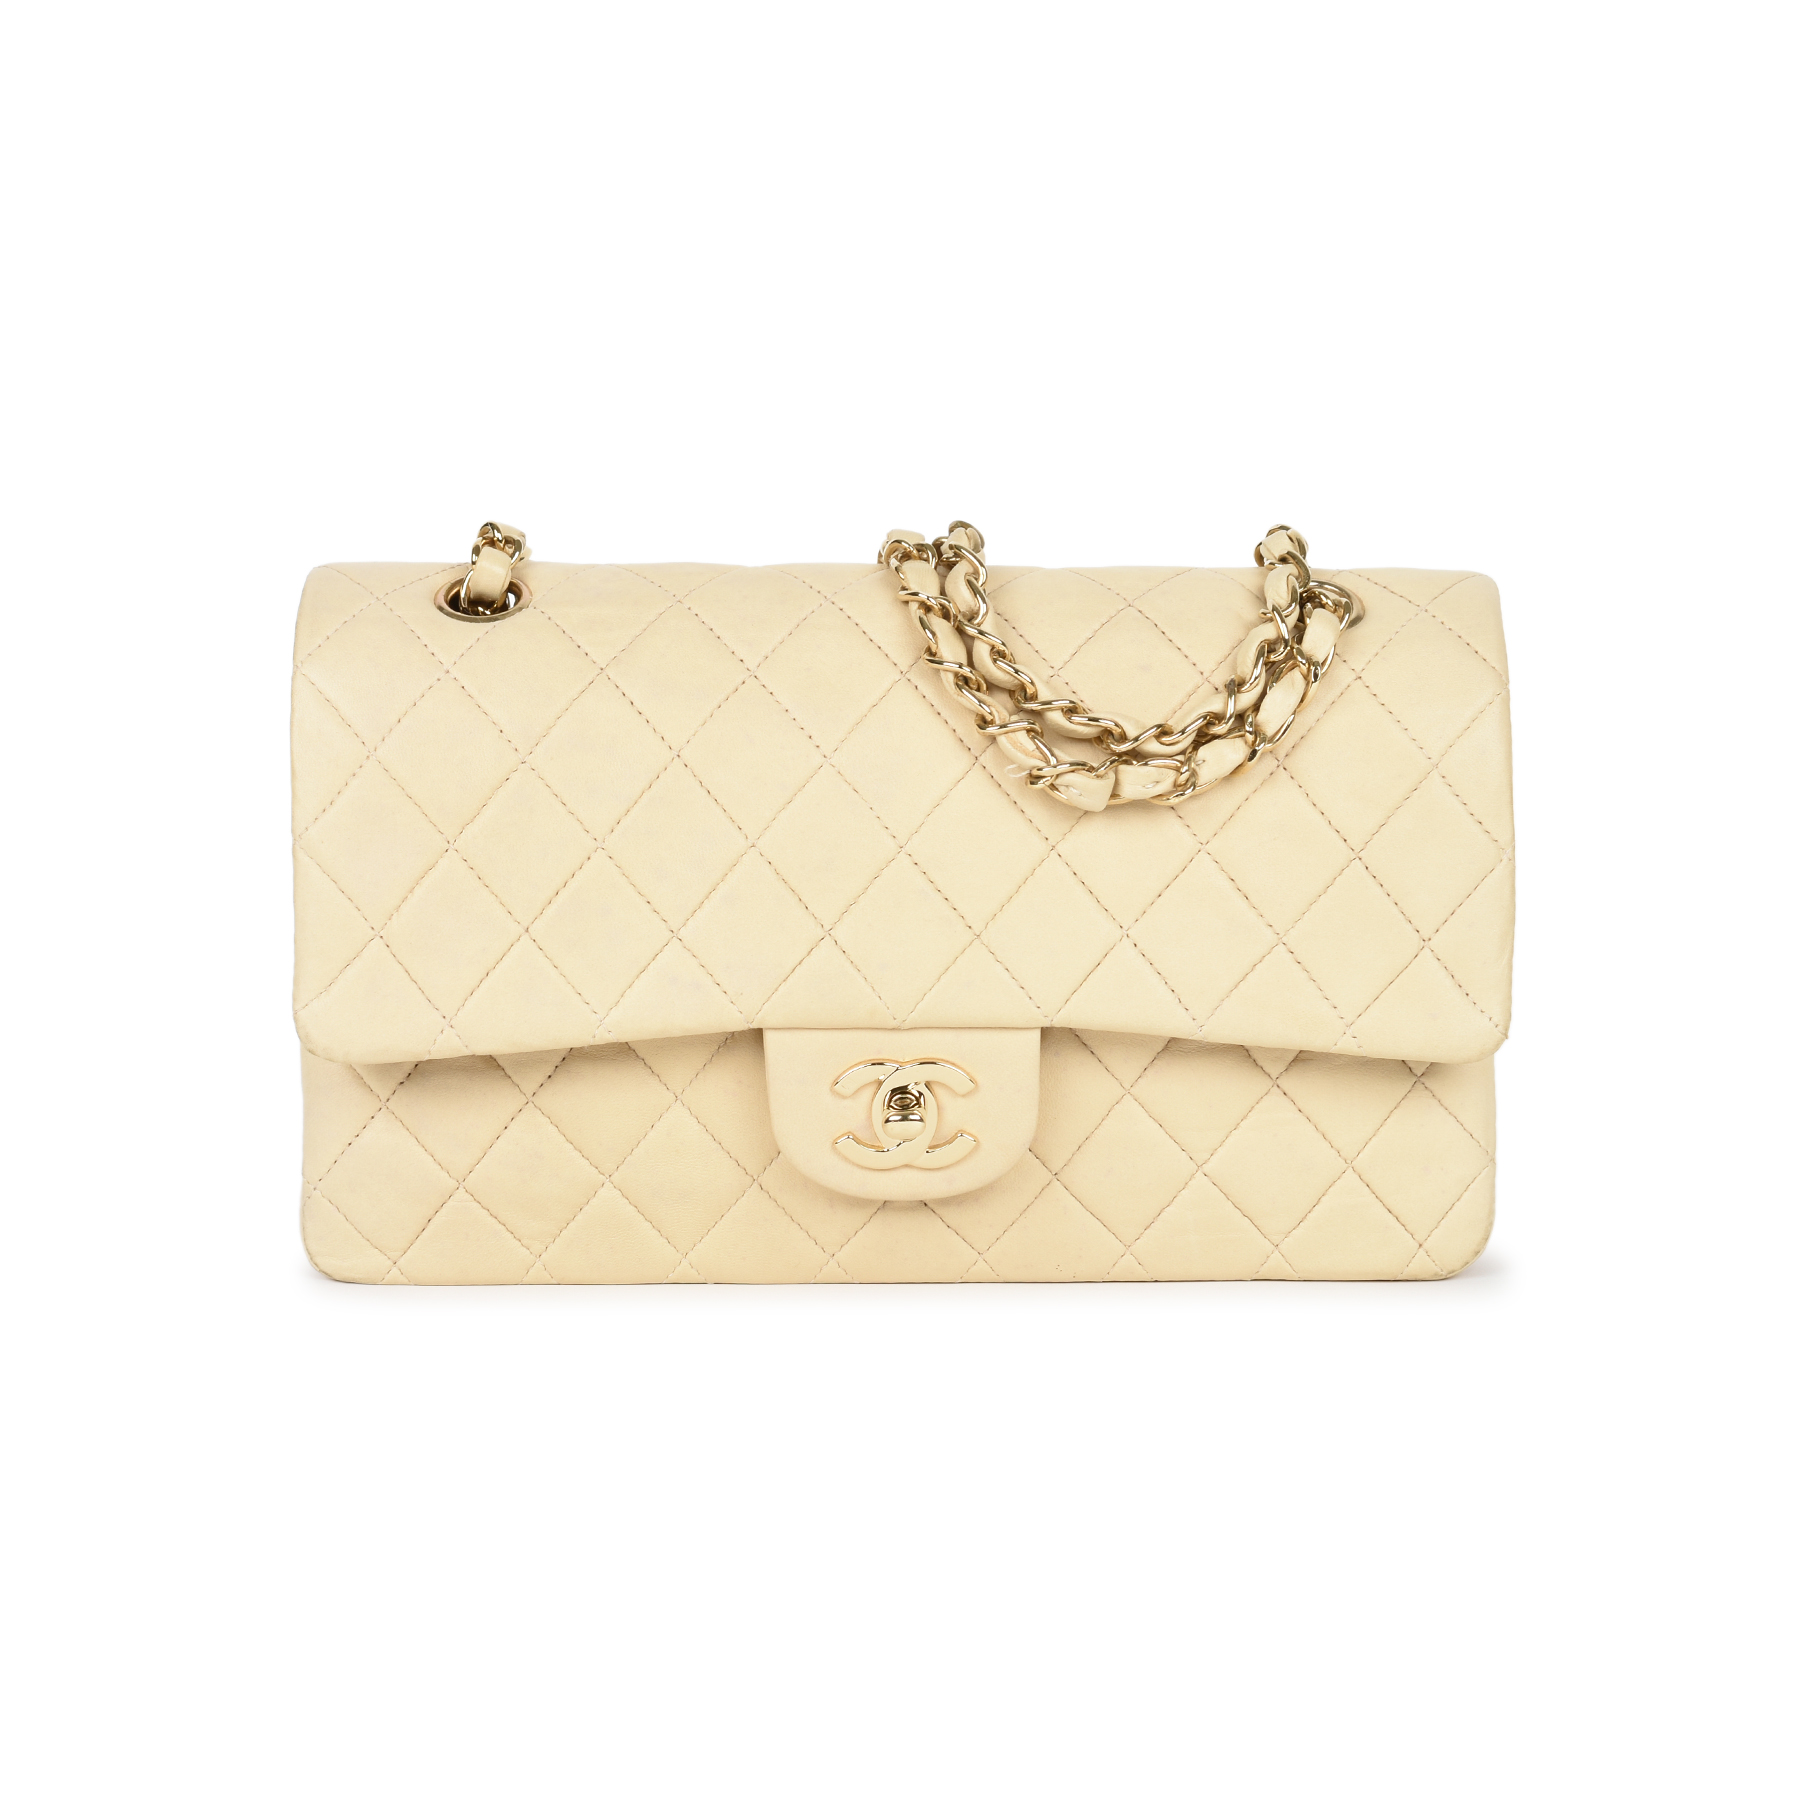 ae76a61bb3df Authentic Second Hand Chanel Cream Medium Classic Flap Bag (PSS-051-00381)  | THE FIFTH COLLECTION